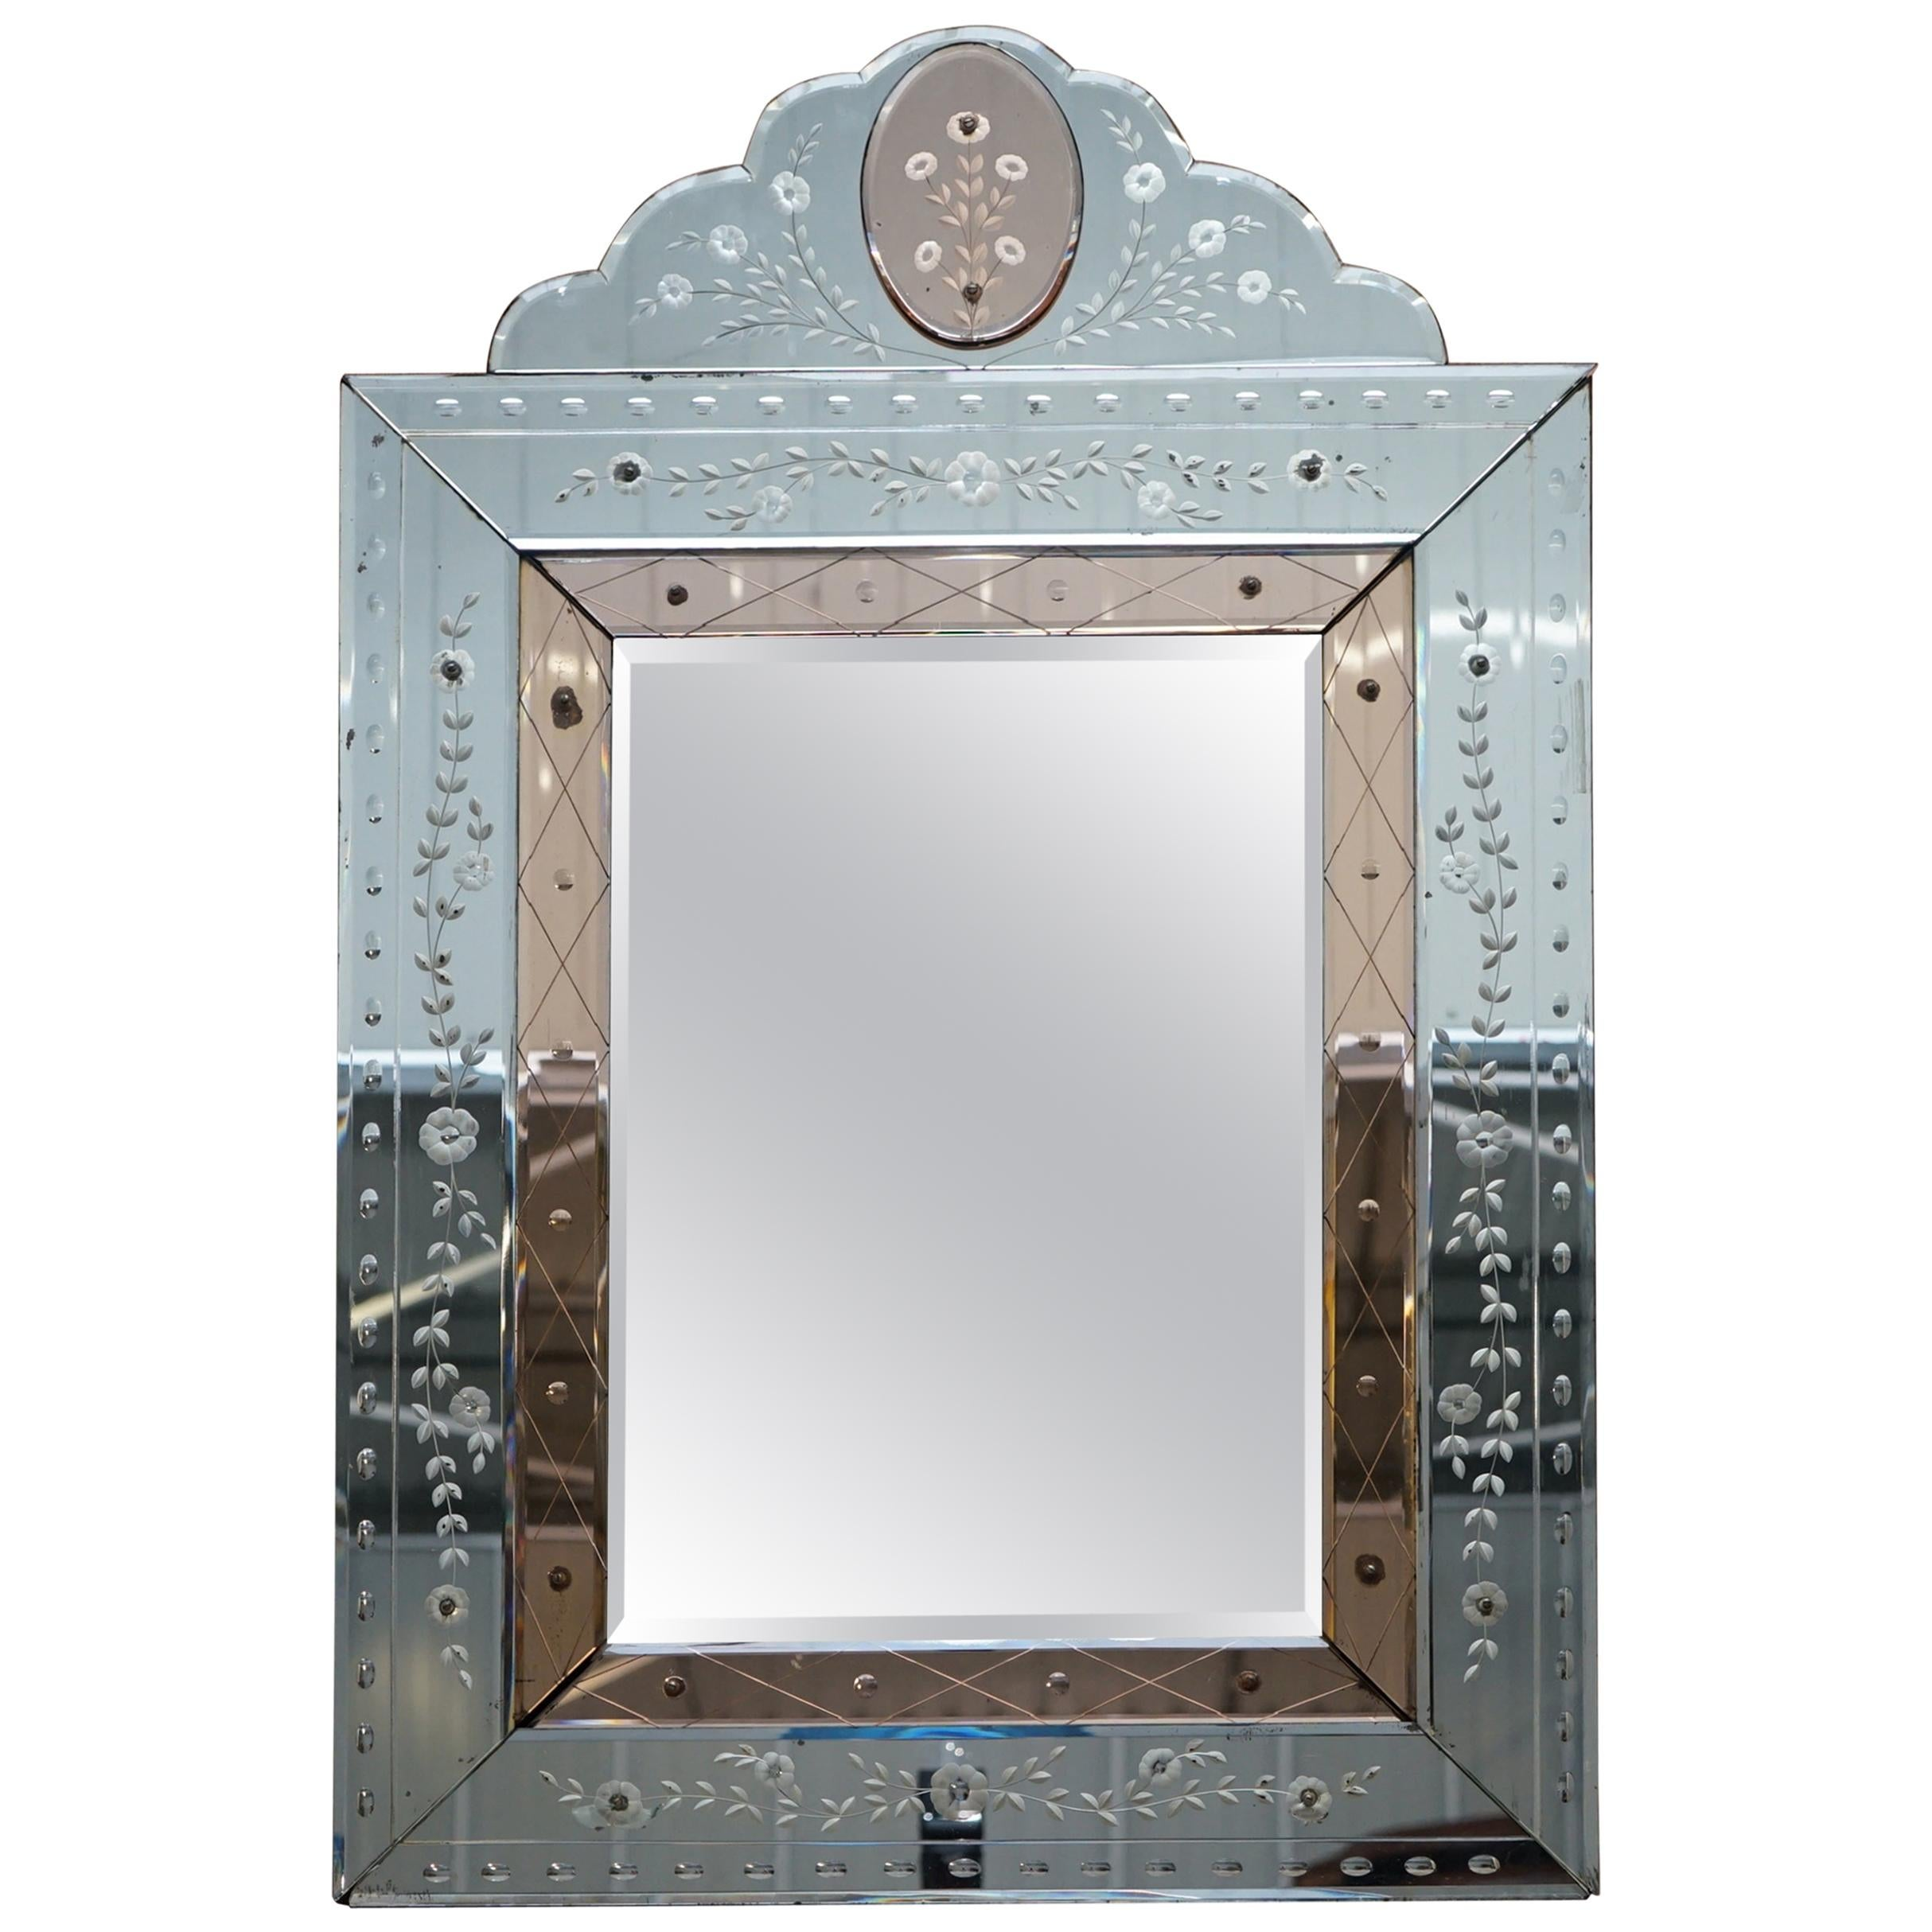 Rare 1930s Peach French Art Deco Venetian Etched & Engraved Bevelled Mirror